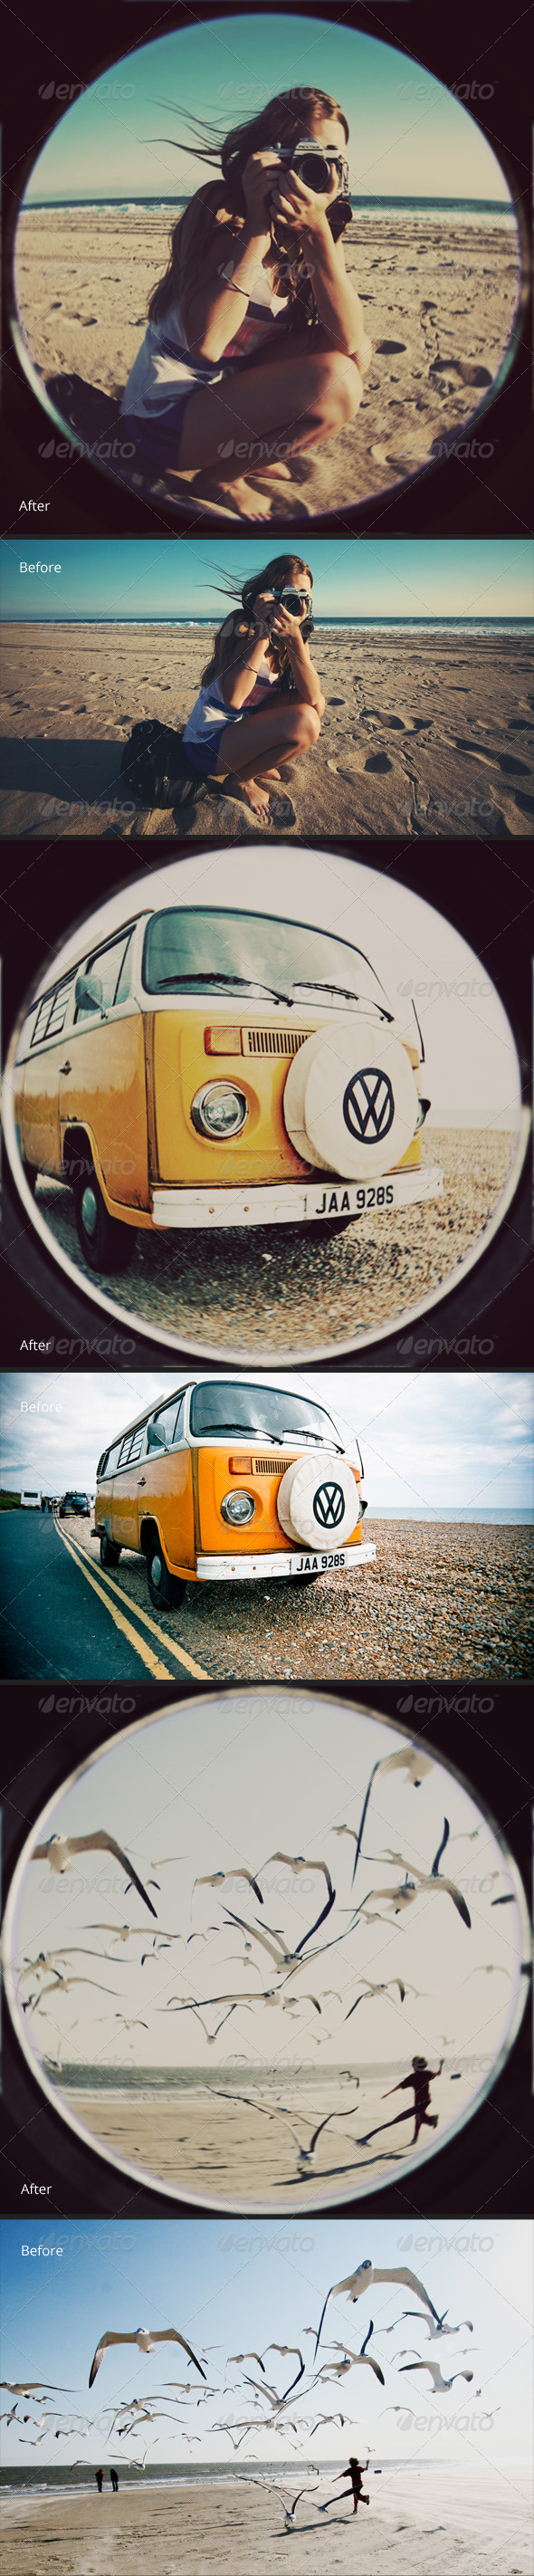 Old Fisheye Lens Effect - Photo Effects Actions